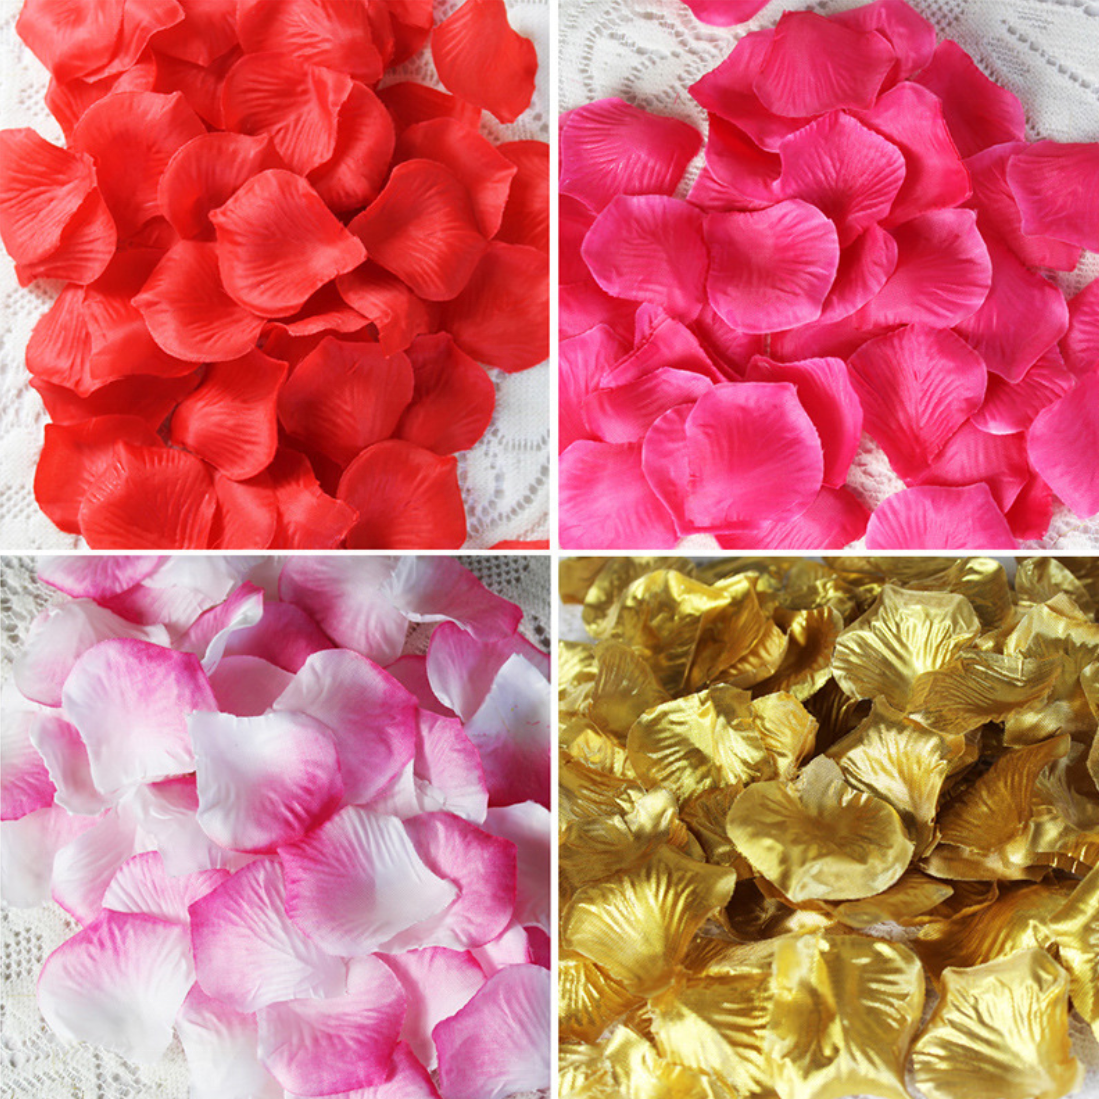 T04139 Floral Flower Arrangements Backdrop Dried Satin Red Blue Real Touch Latex Silk Rose Flower Petals Rose Petals Wedding